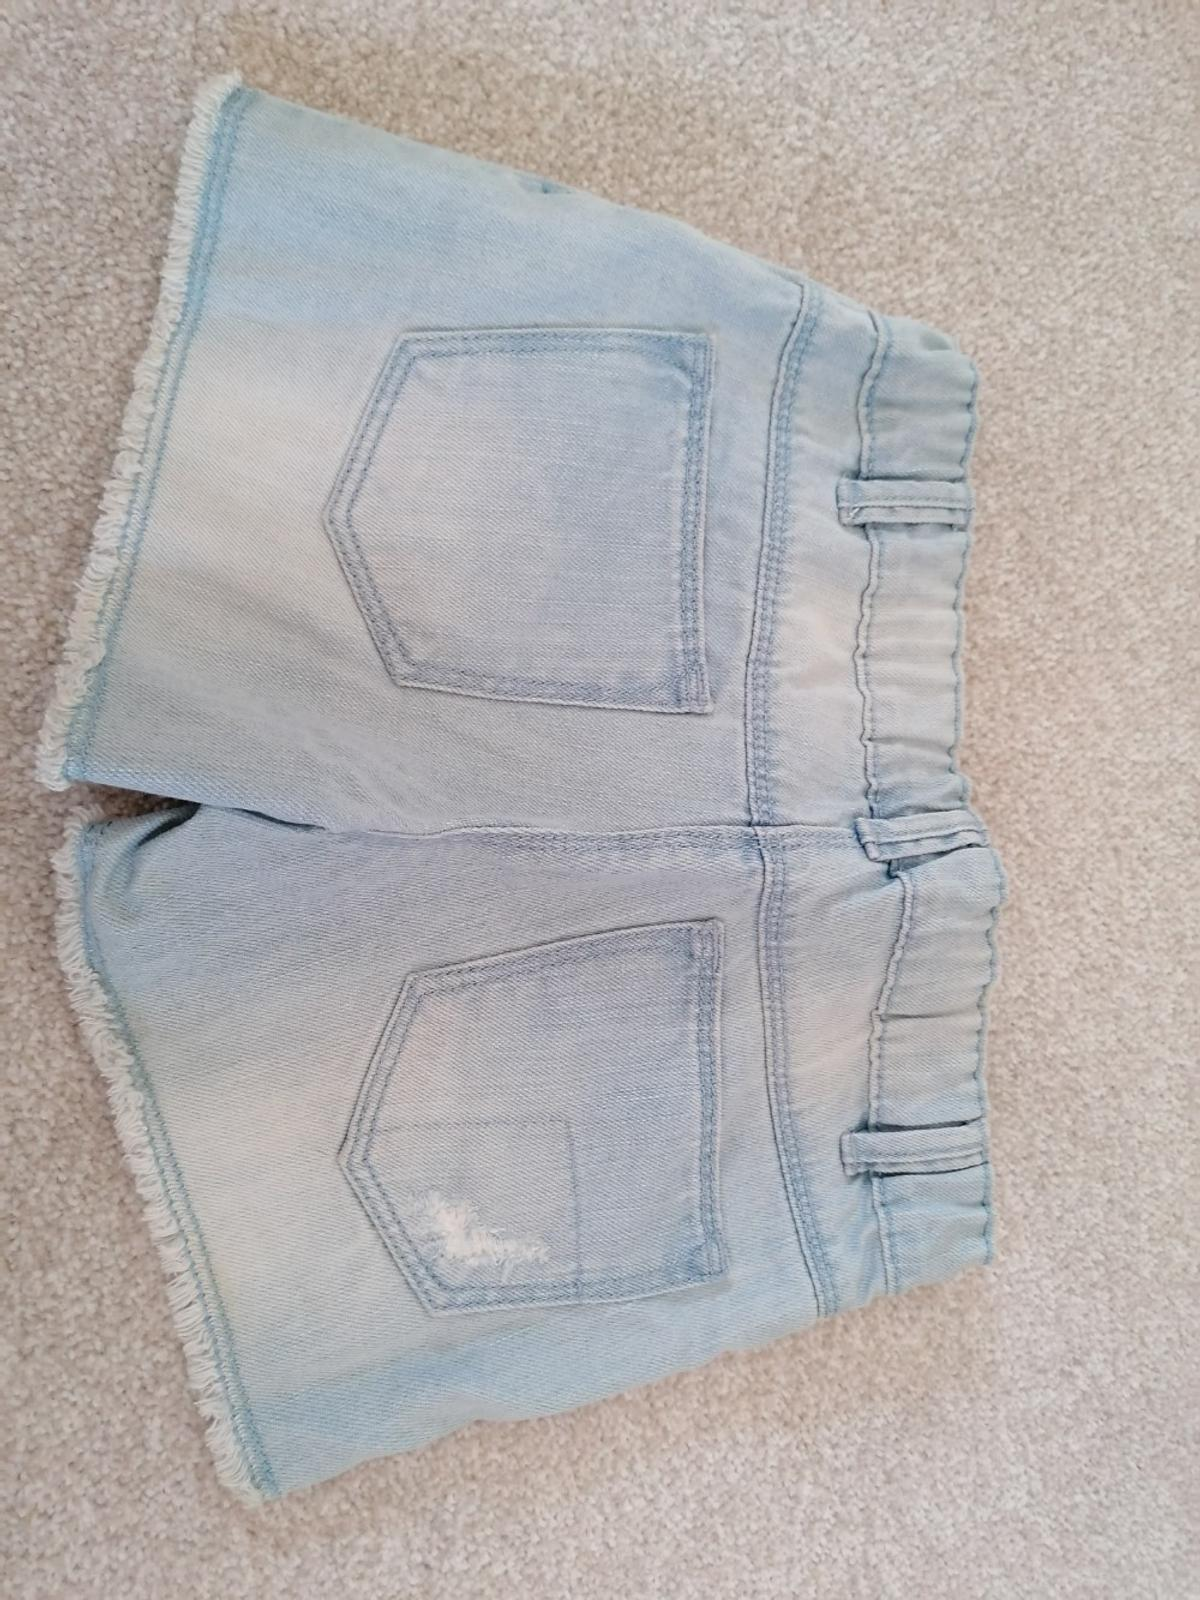 Brand new with tag age 7yrs denim shorts from TU. Smoke free home. Collection only.